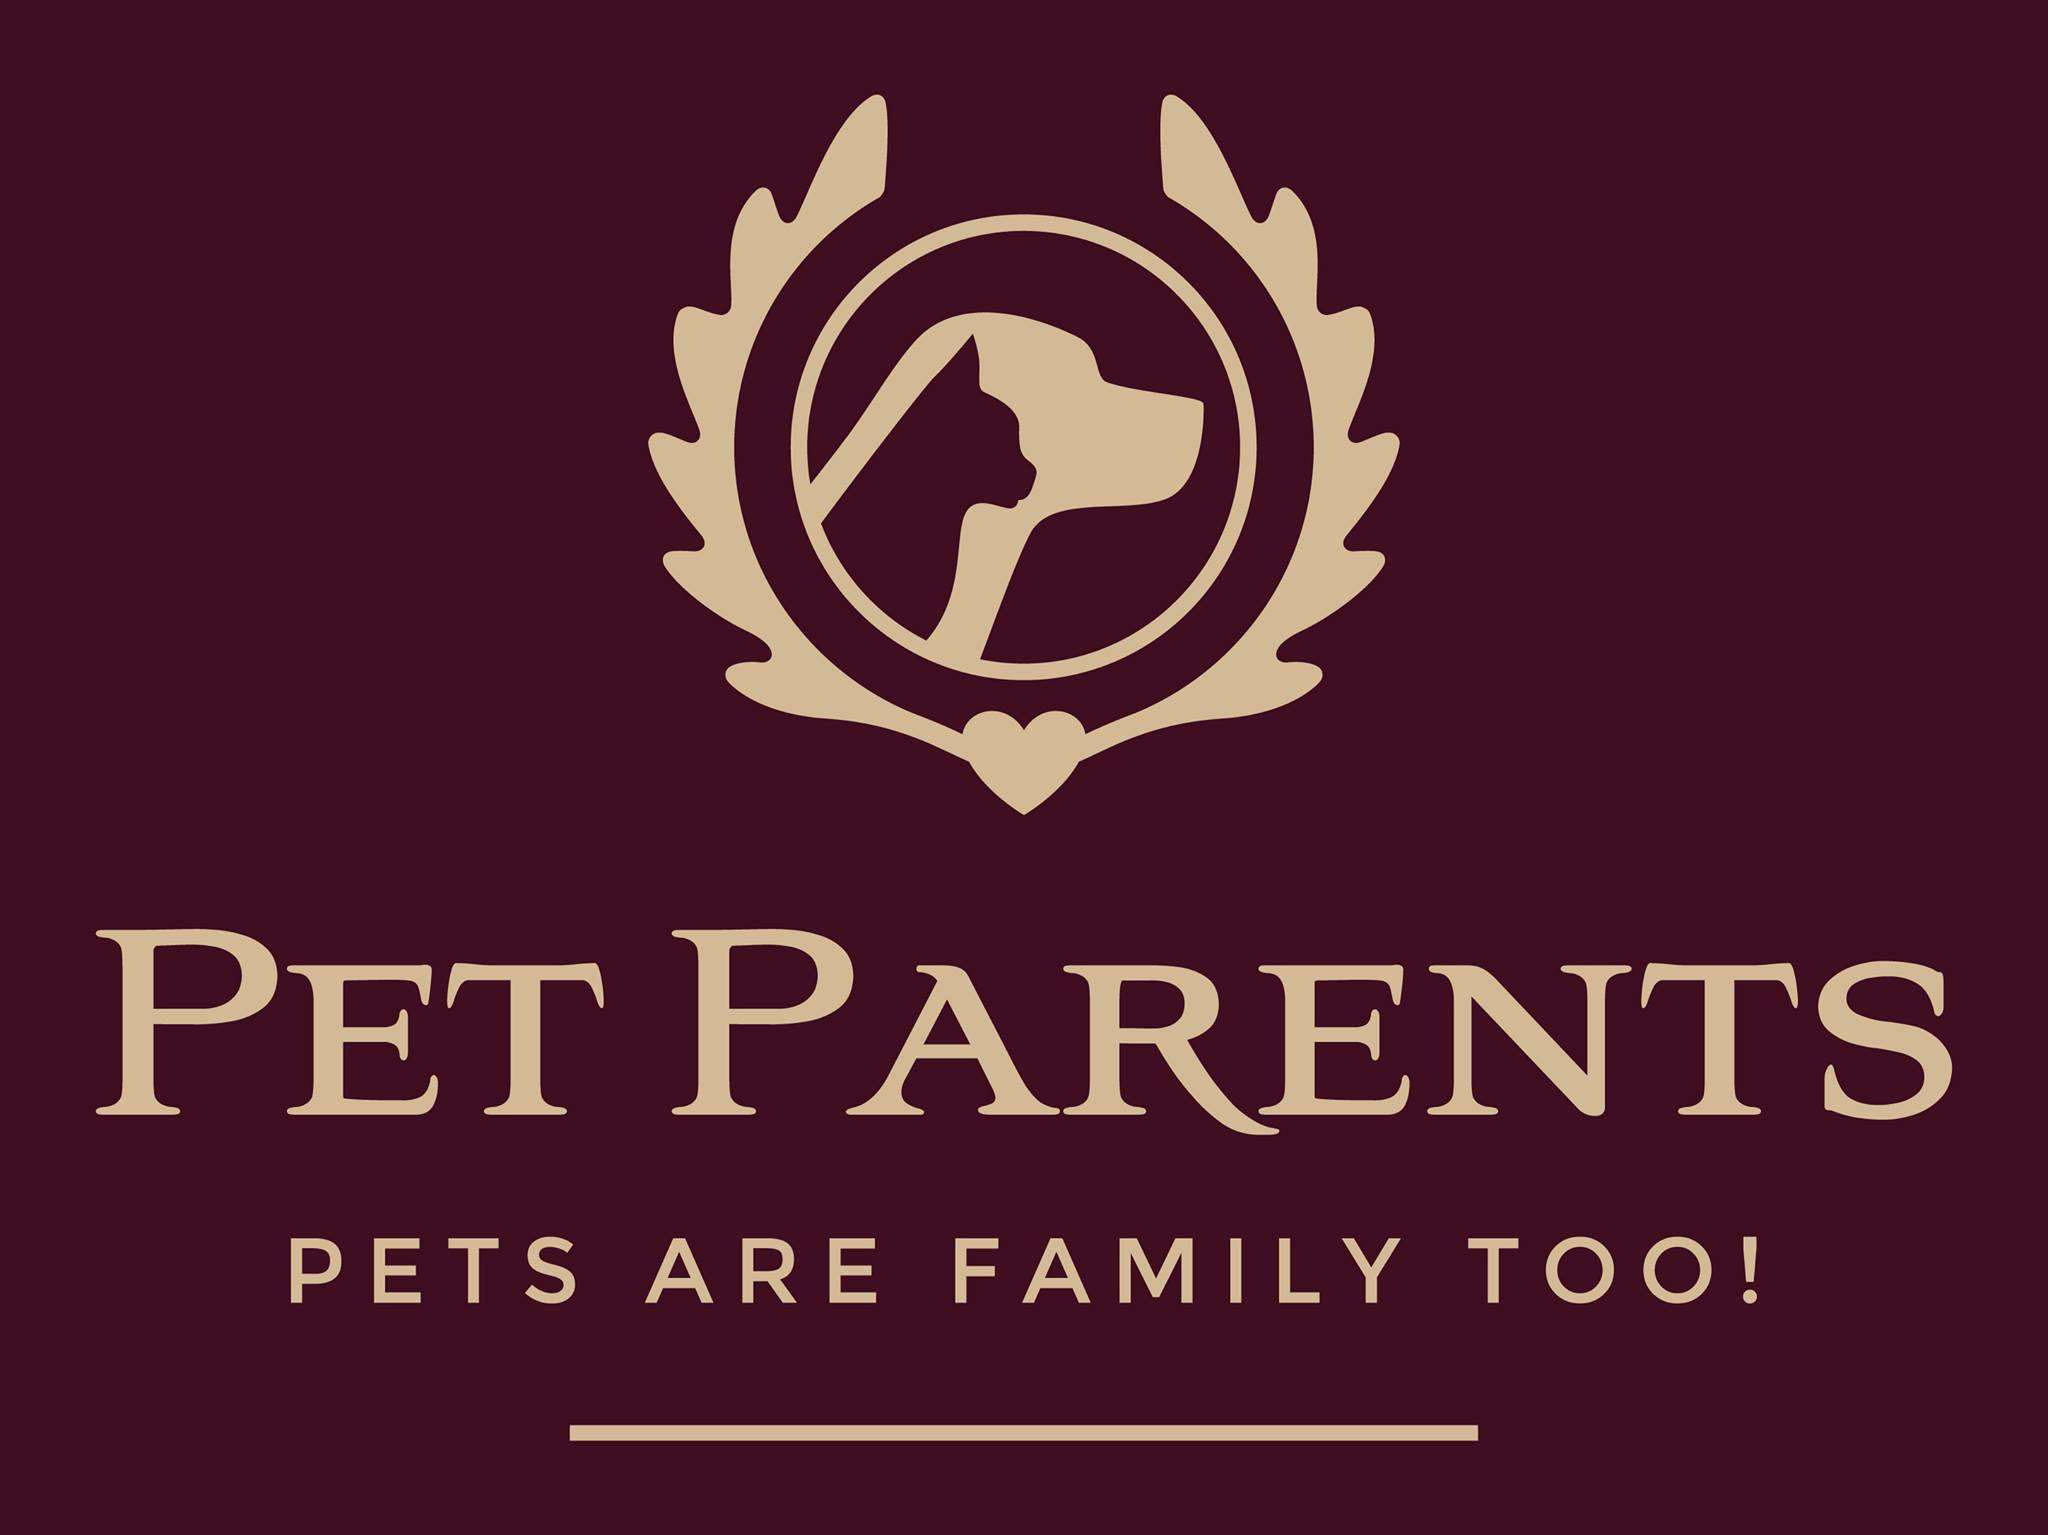 Pet Parents